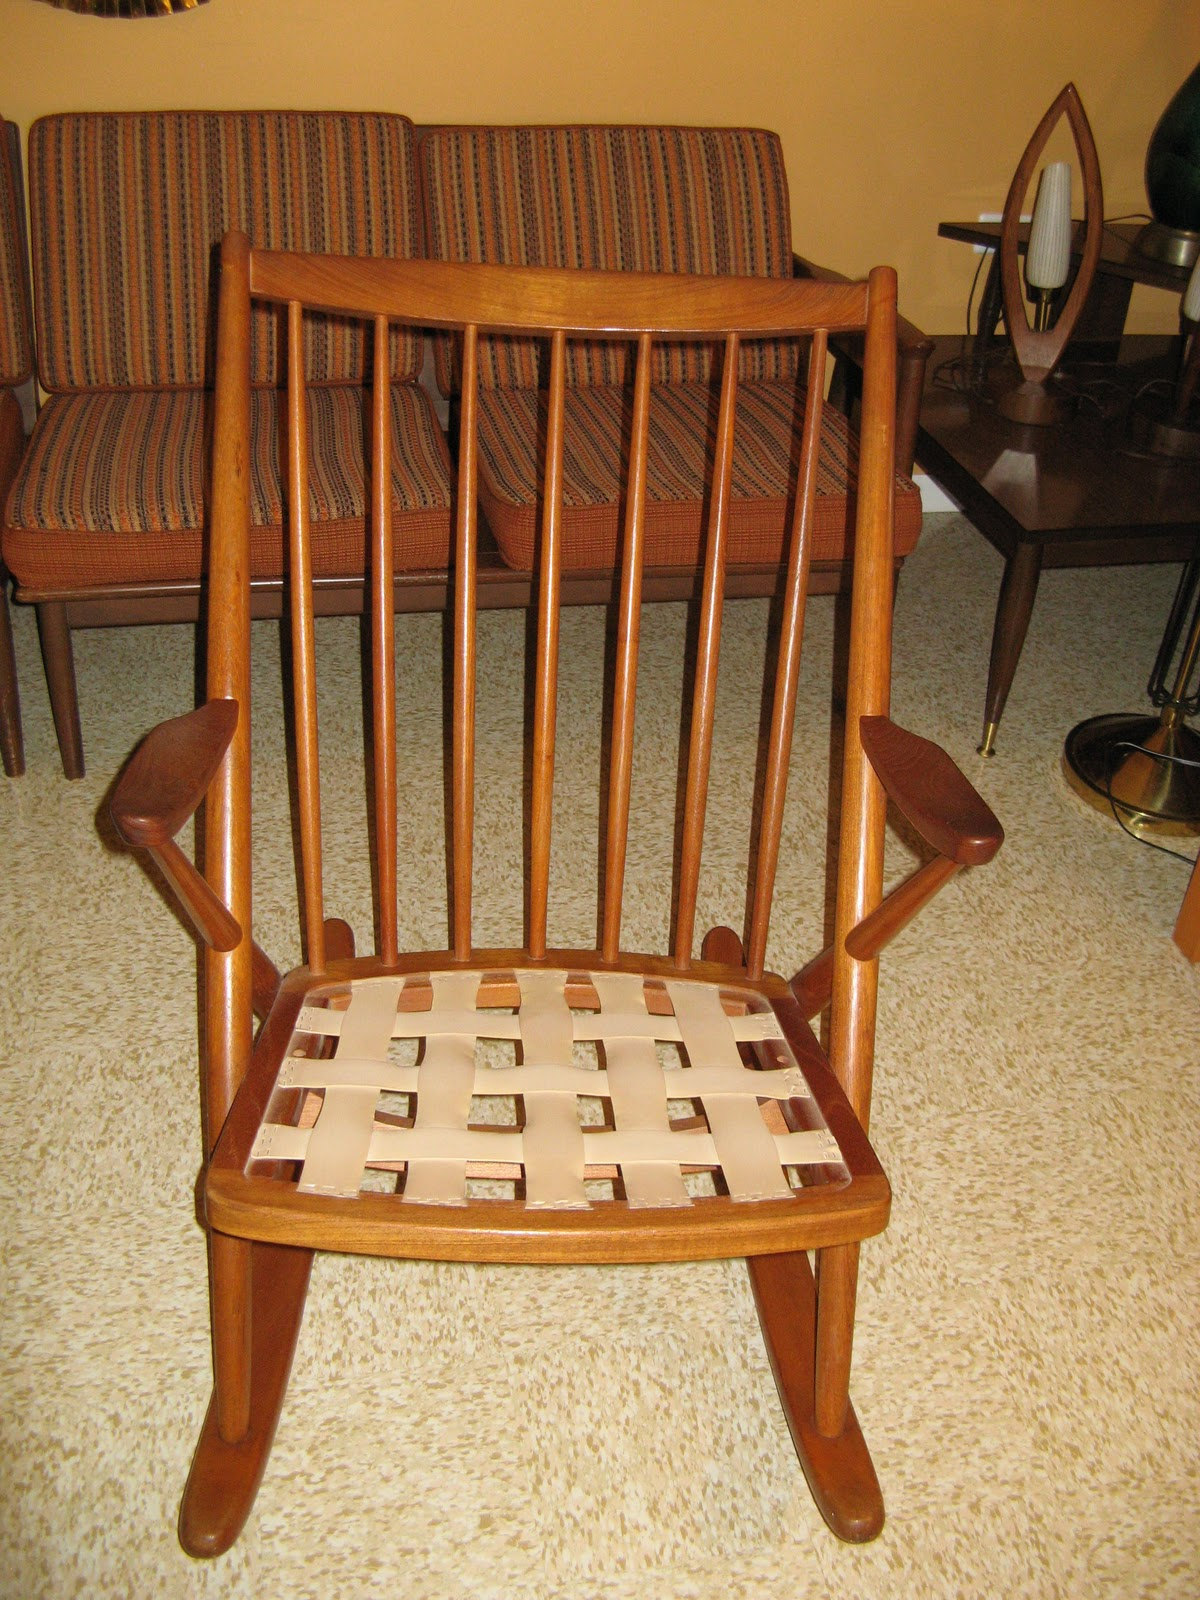 Frank reenskaug rocking chair - Danish Modern Comfortable And Sharp Rocking Chair Designed By Frank Reenskaug For Bramin Mobler Solid Teak Circa 1960 S Excellent Condition